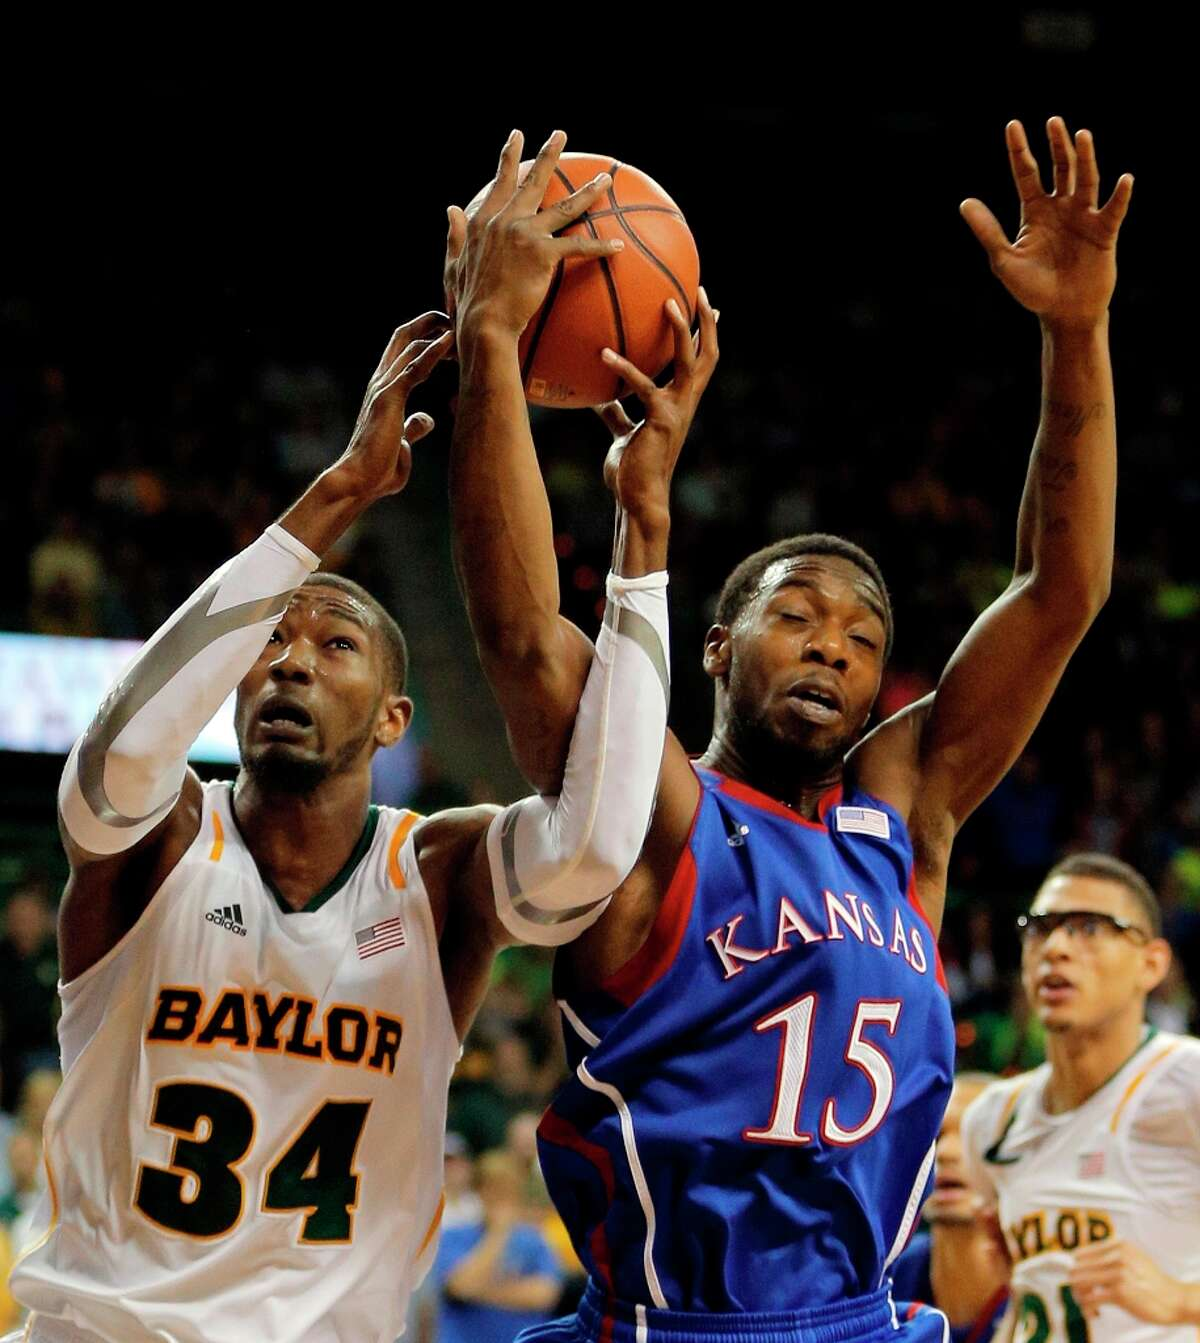 Who's hot - Baylor F Cory Jefferson: Erupted for 25 points in the Bears' victory over Kansas. After failing to hit a 3-pointer in the previous 64 games in his college career, Jefferson hit all three 3-point attempts against the Jayhawks. Jefferson is averaging 15.3 points per game over his last three games and 8.5 rebounds over his last four games.